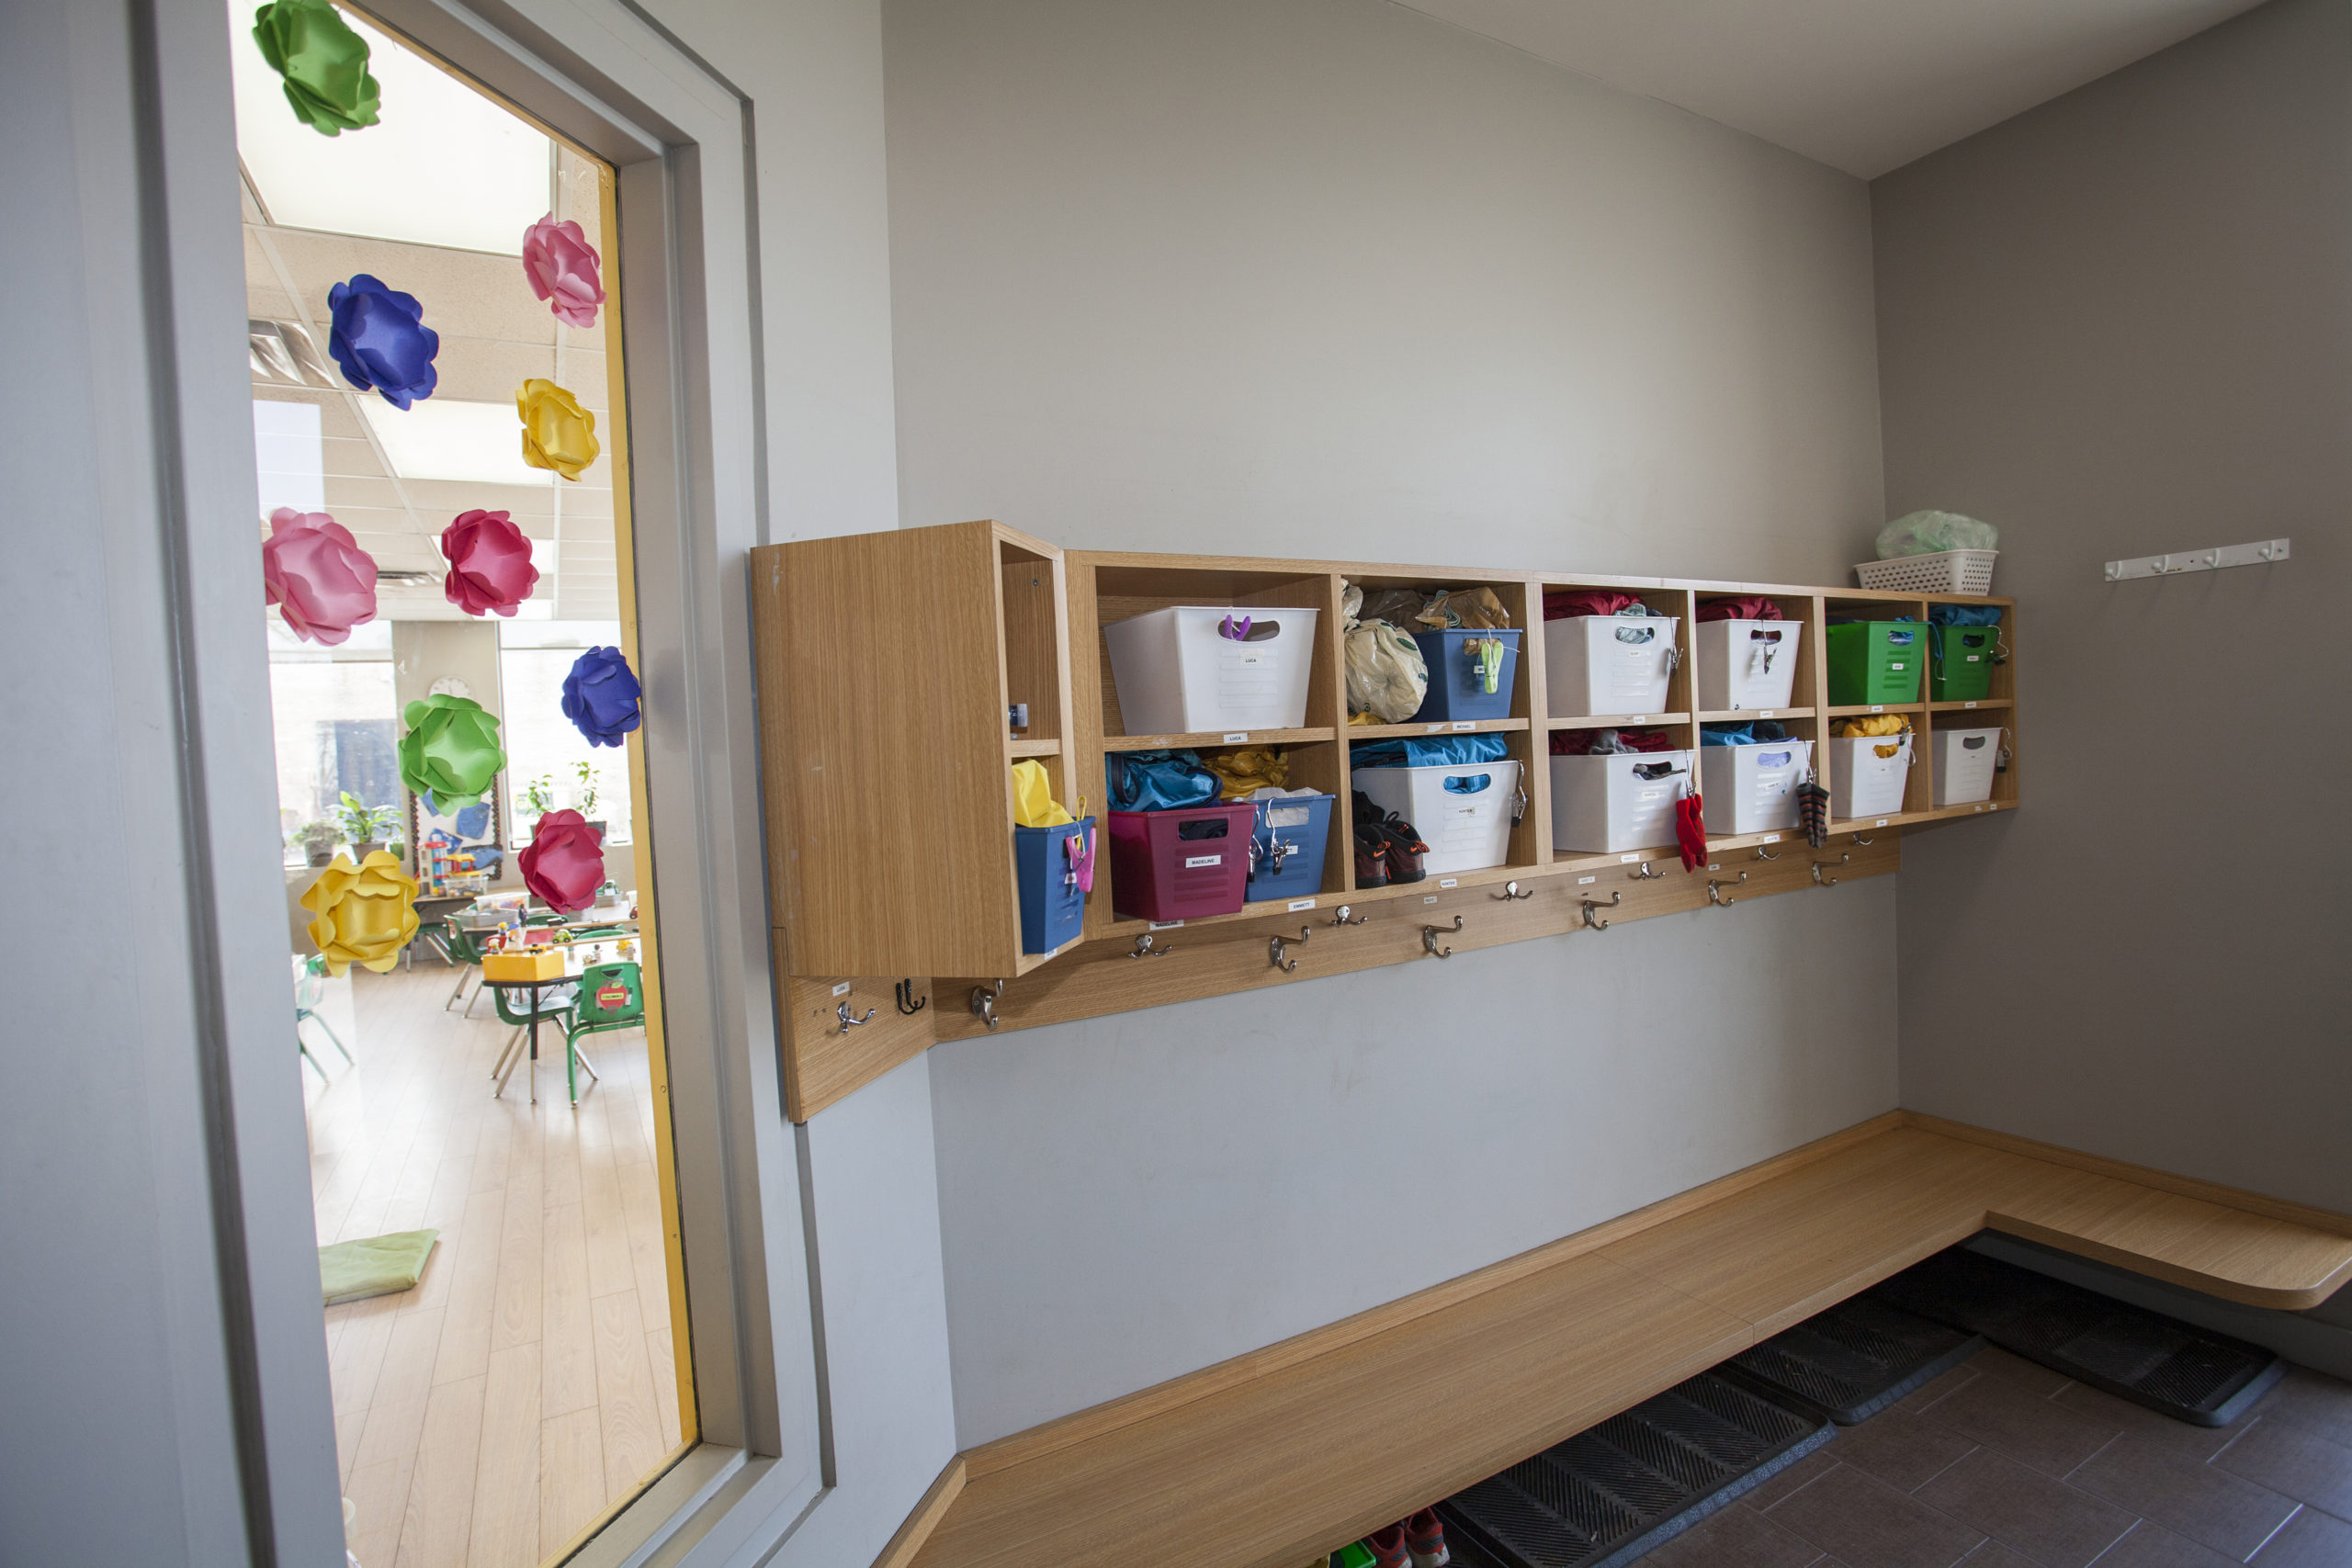 cubby area with coat hooks and bins